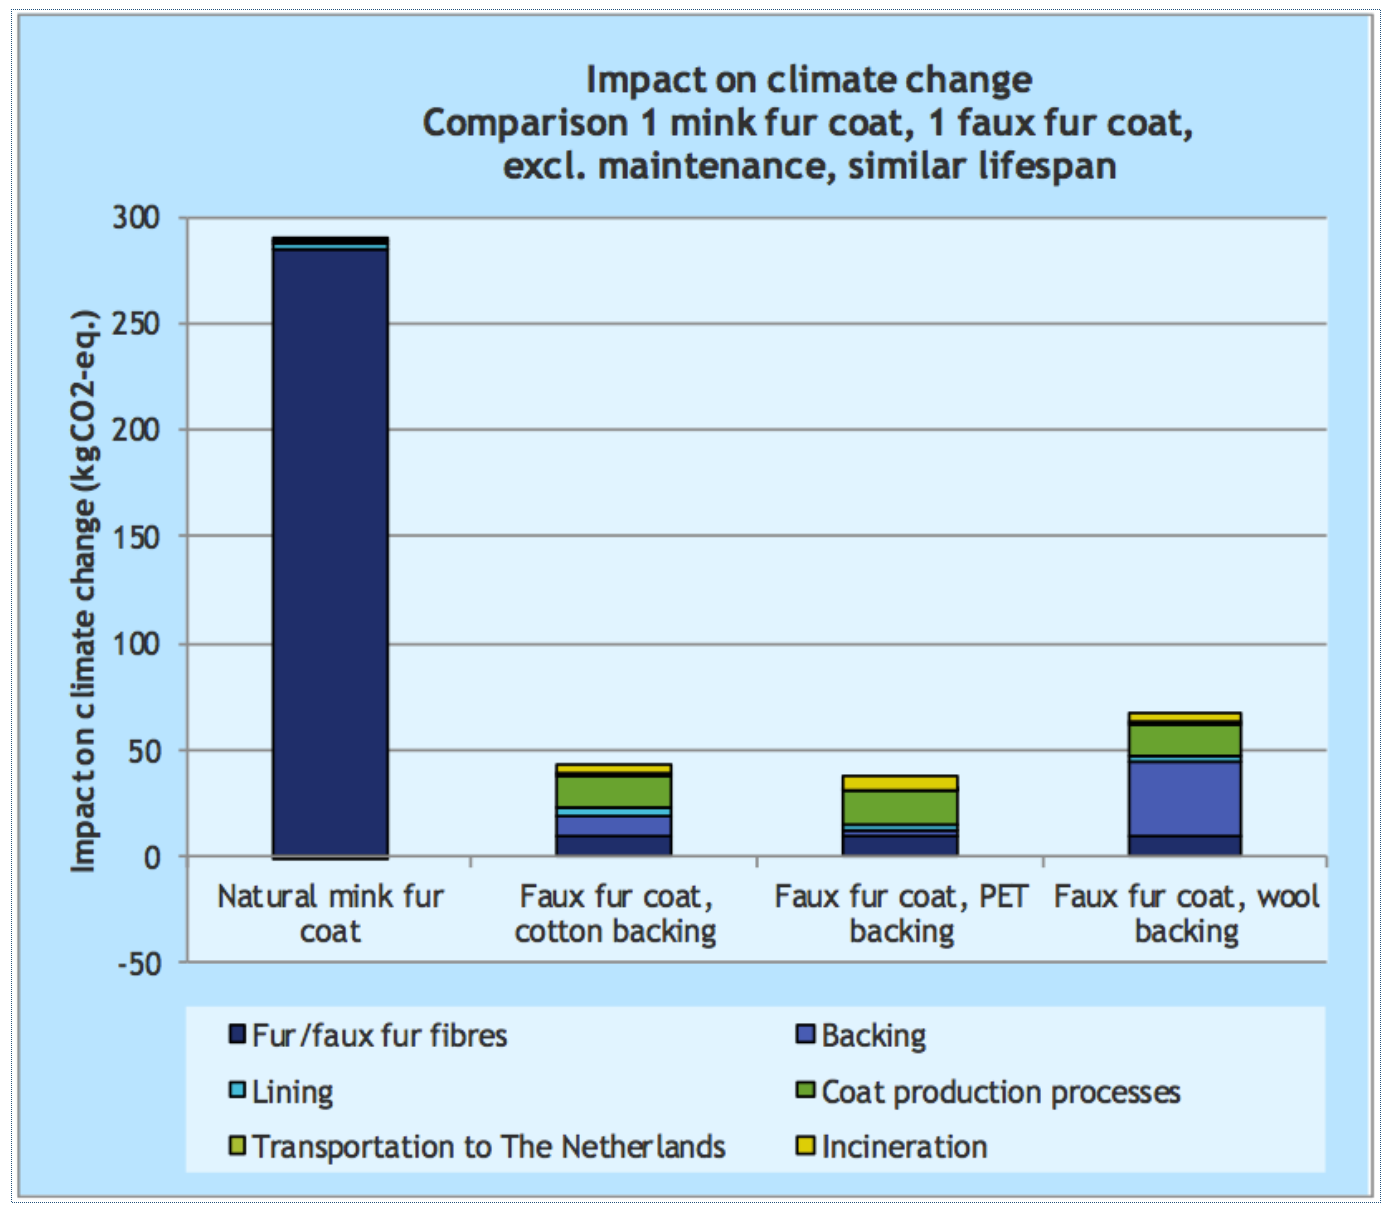 Image from www.cedelft.eu